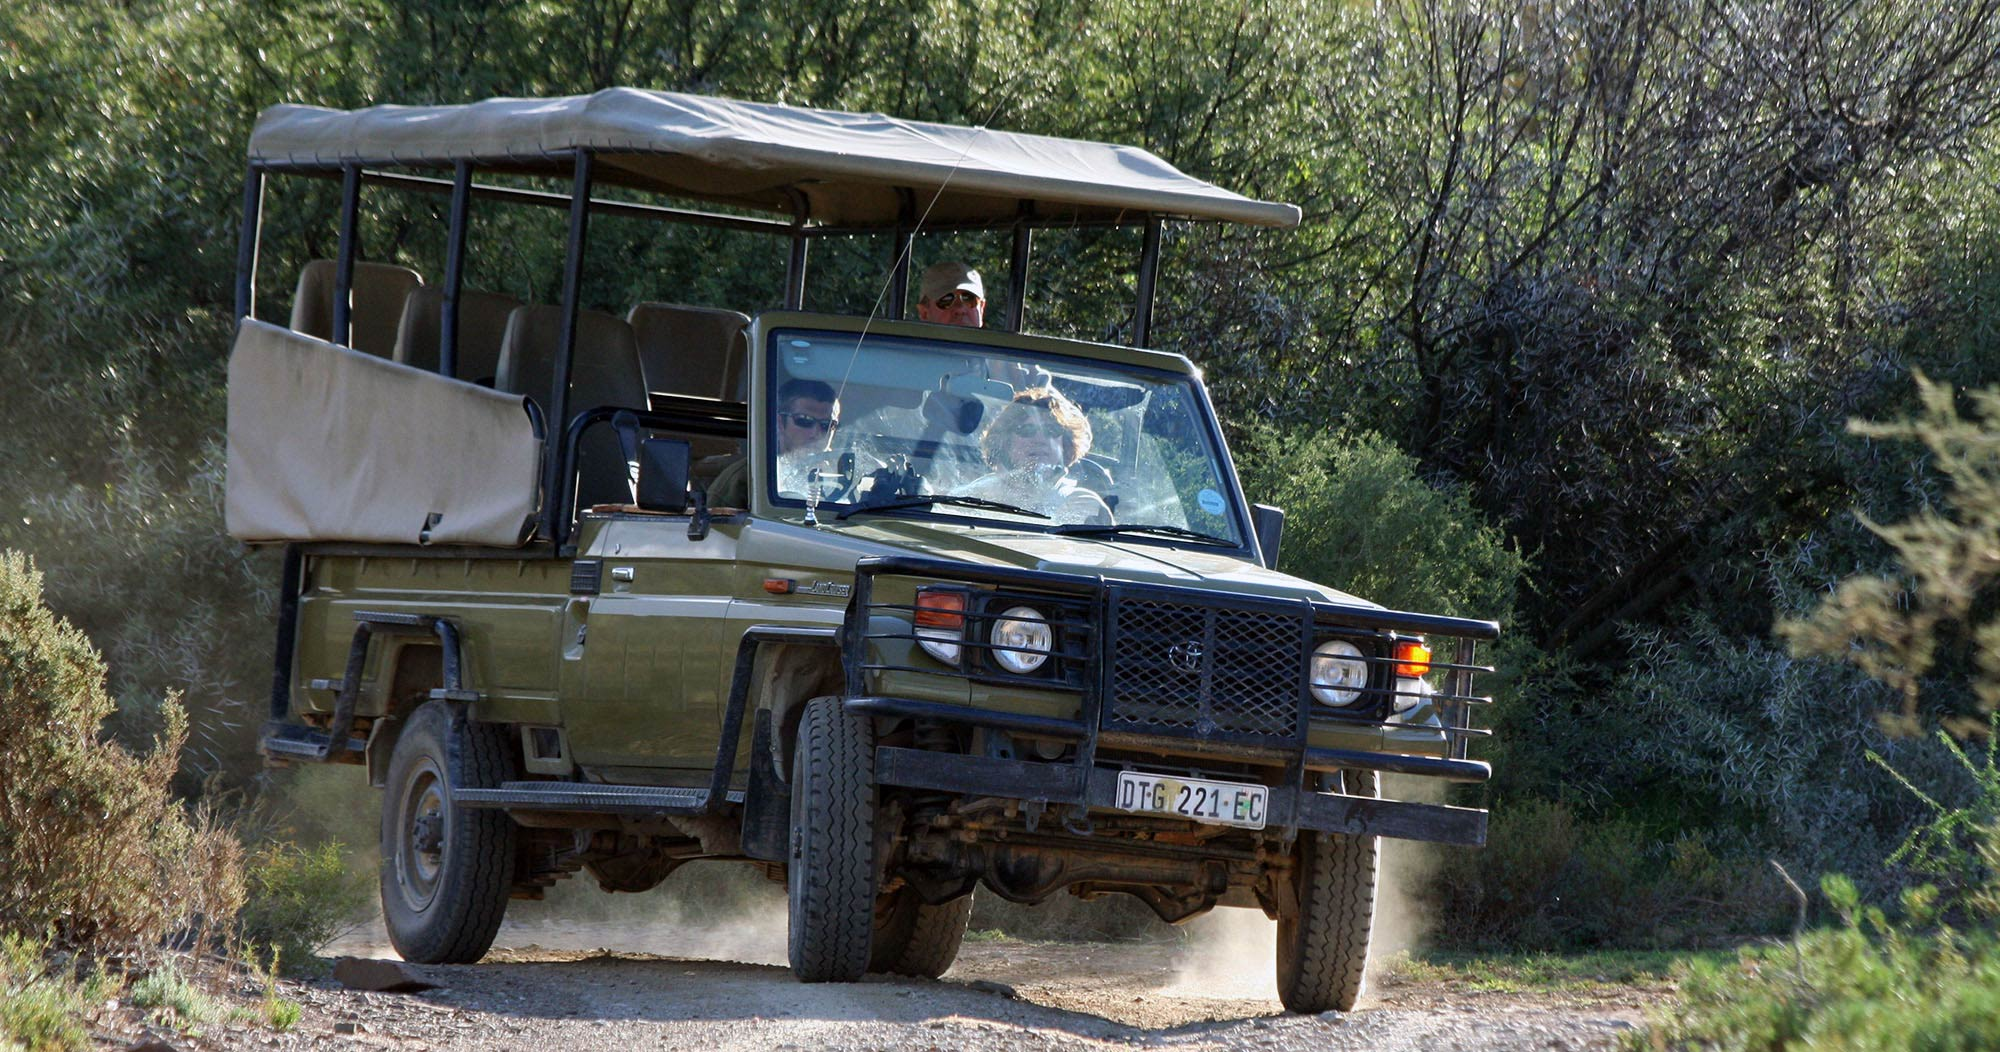 Manyeleti South Africa safari - Safari information for your